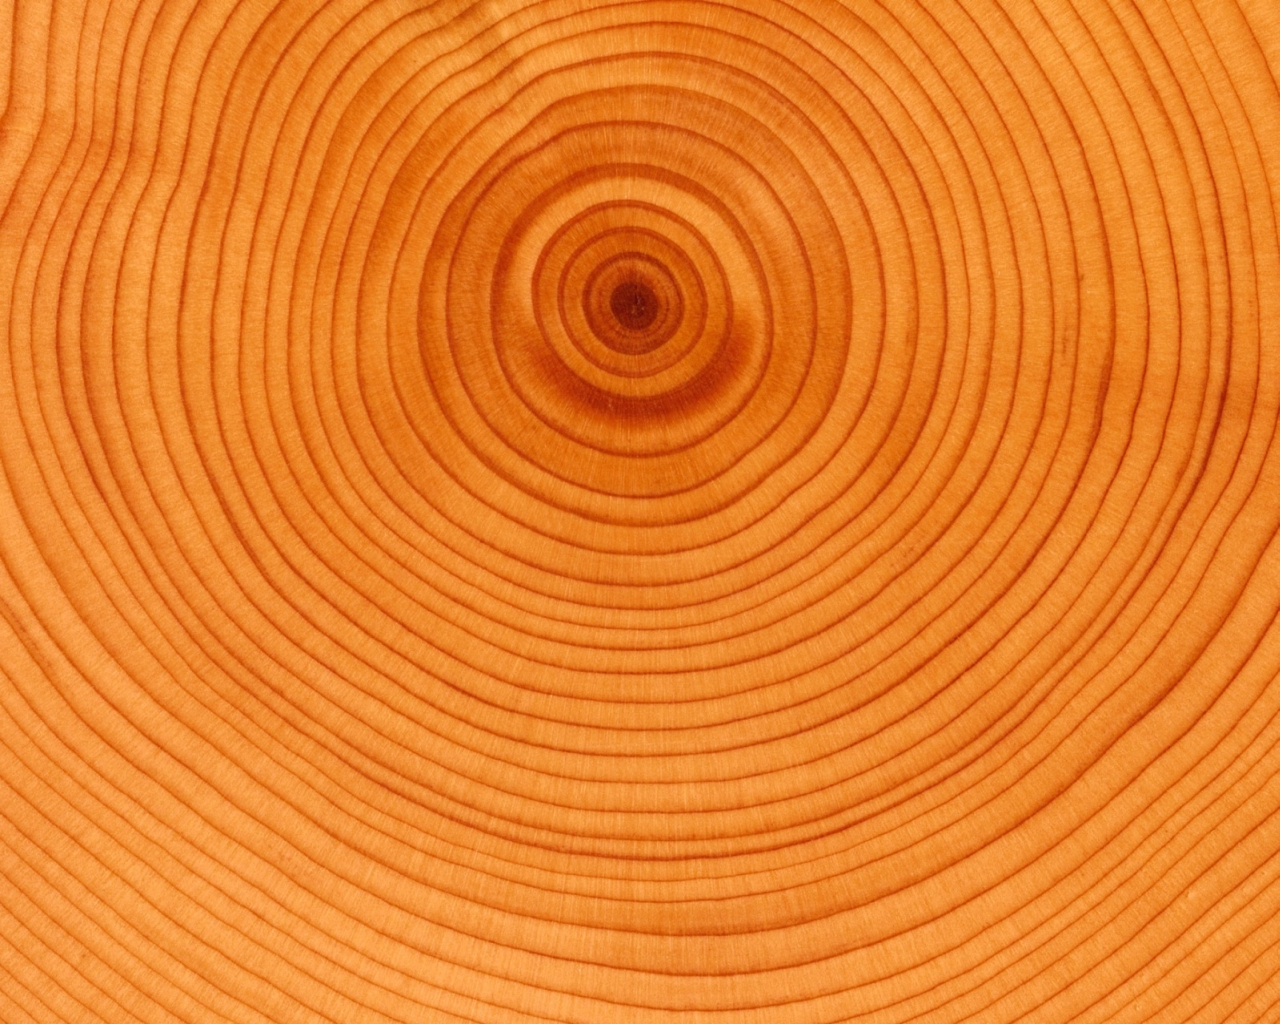 Abstract pattern, tree rings